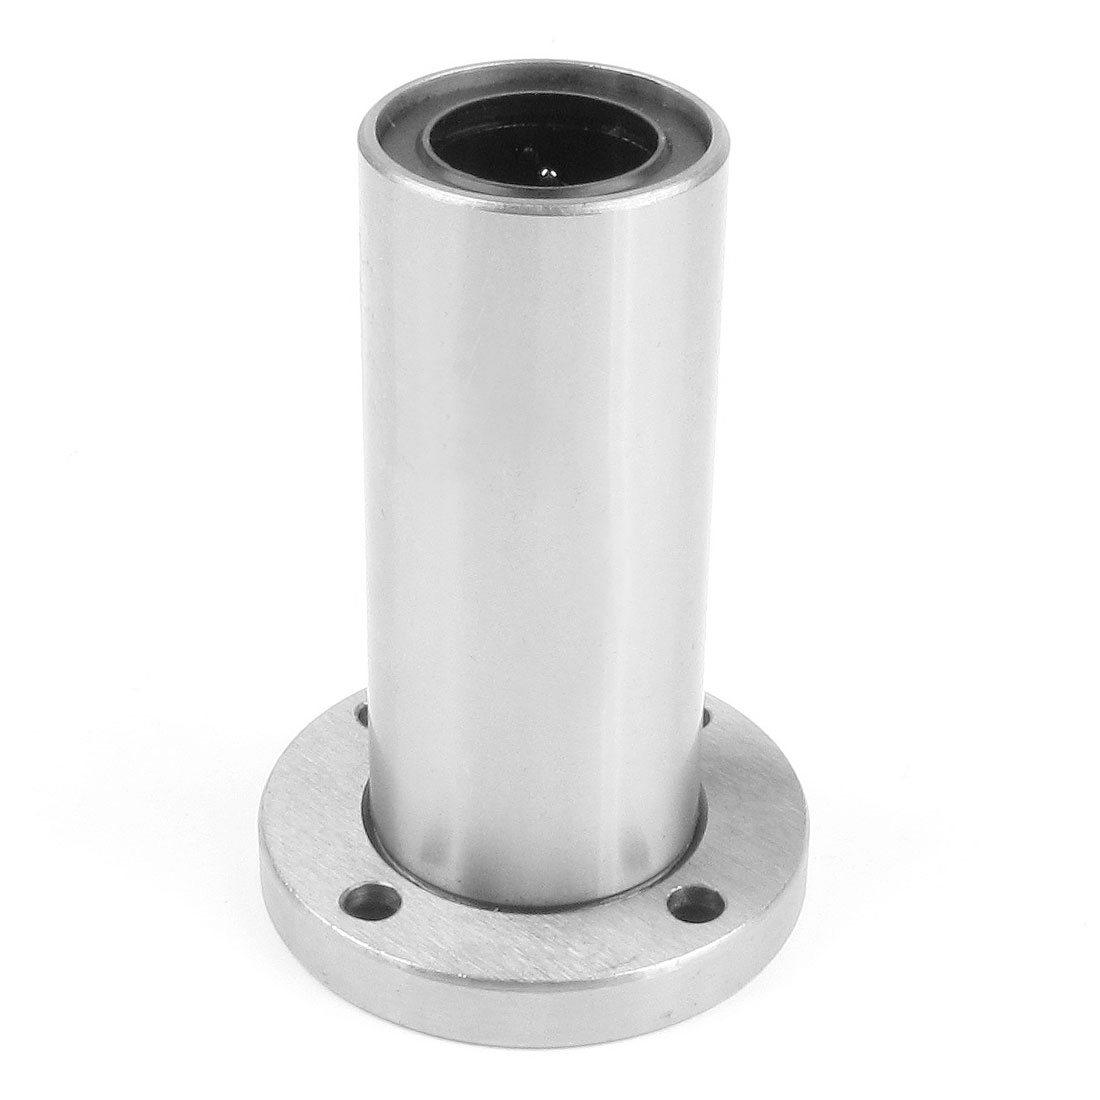 UF20L 20mm x 32mm x 80mm Round Base Linear Motion Ball Bearing Silver Tone